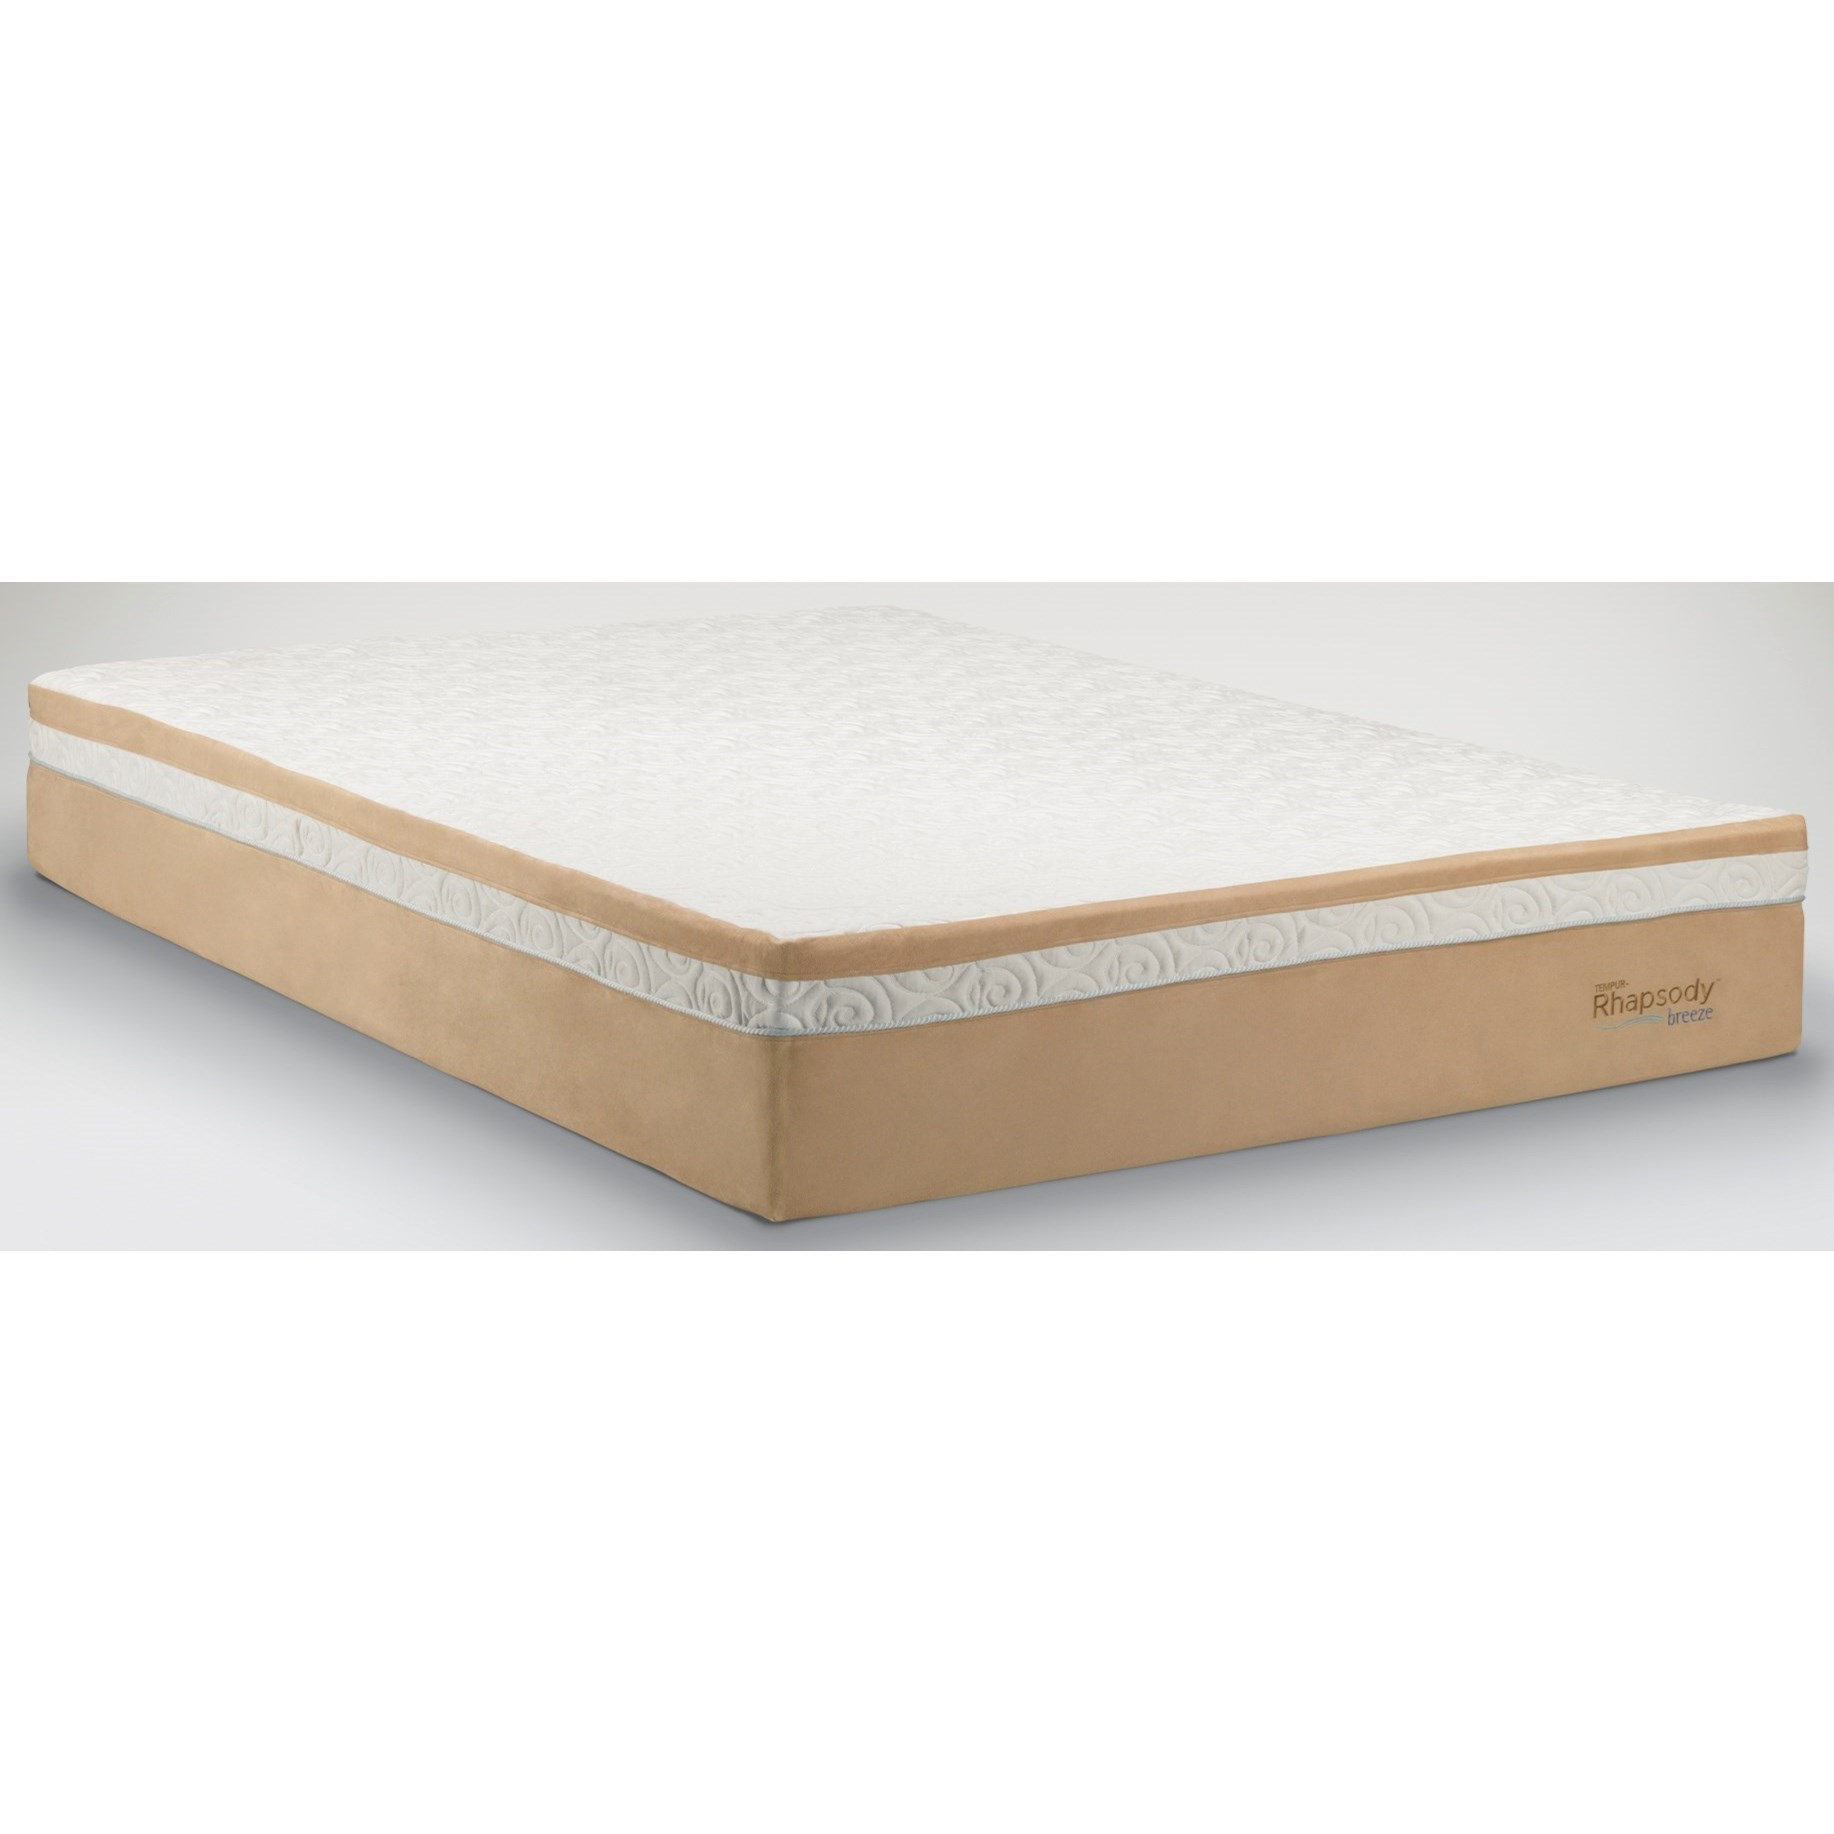 Tempur-Pedic® TEMPUR-Contour™ Rhapsody Breeze Queen Medium Firm Mattress - Item Number: 10104150